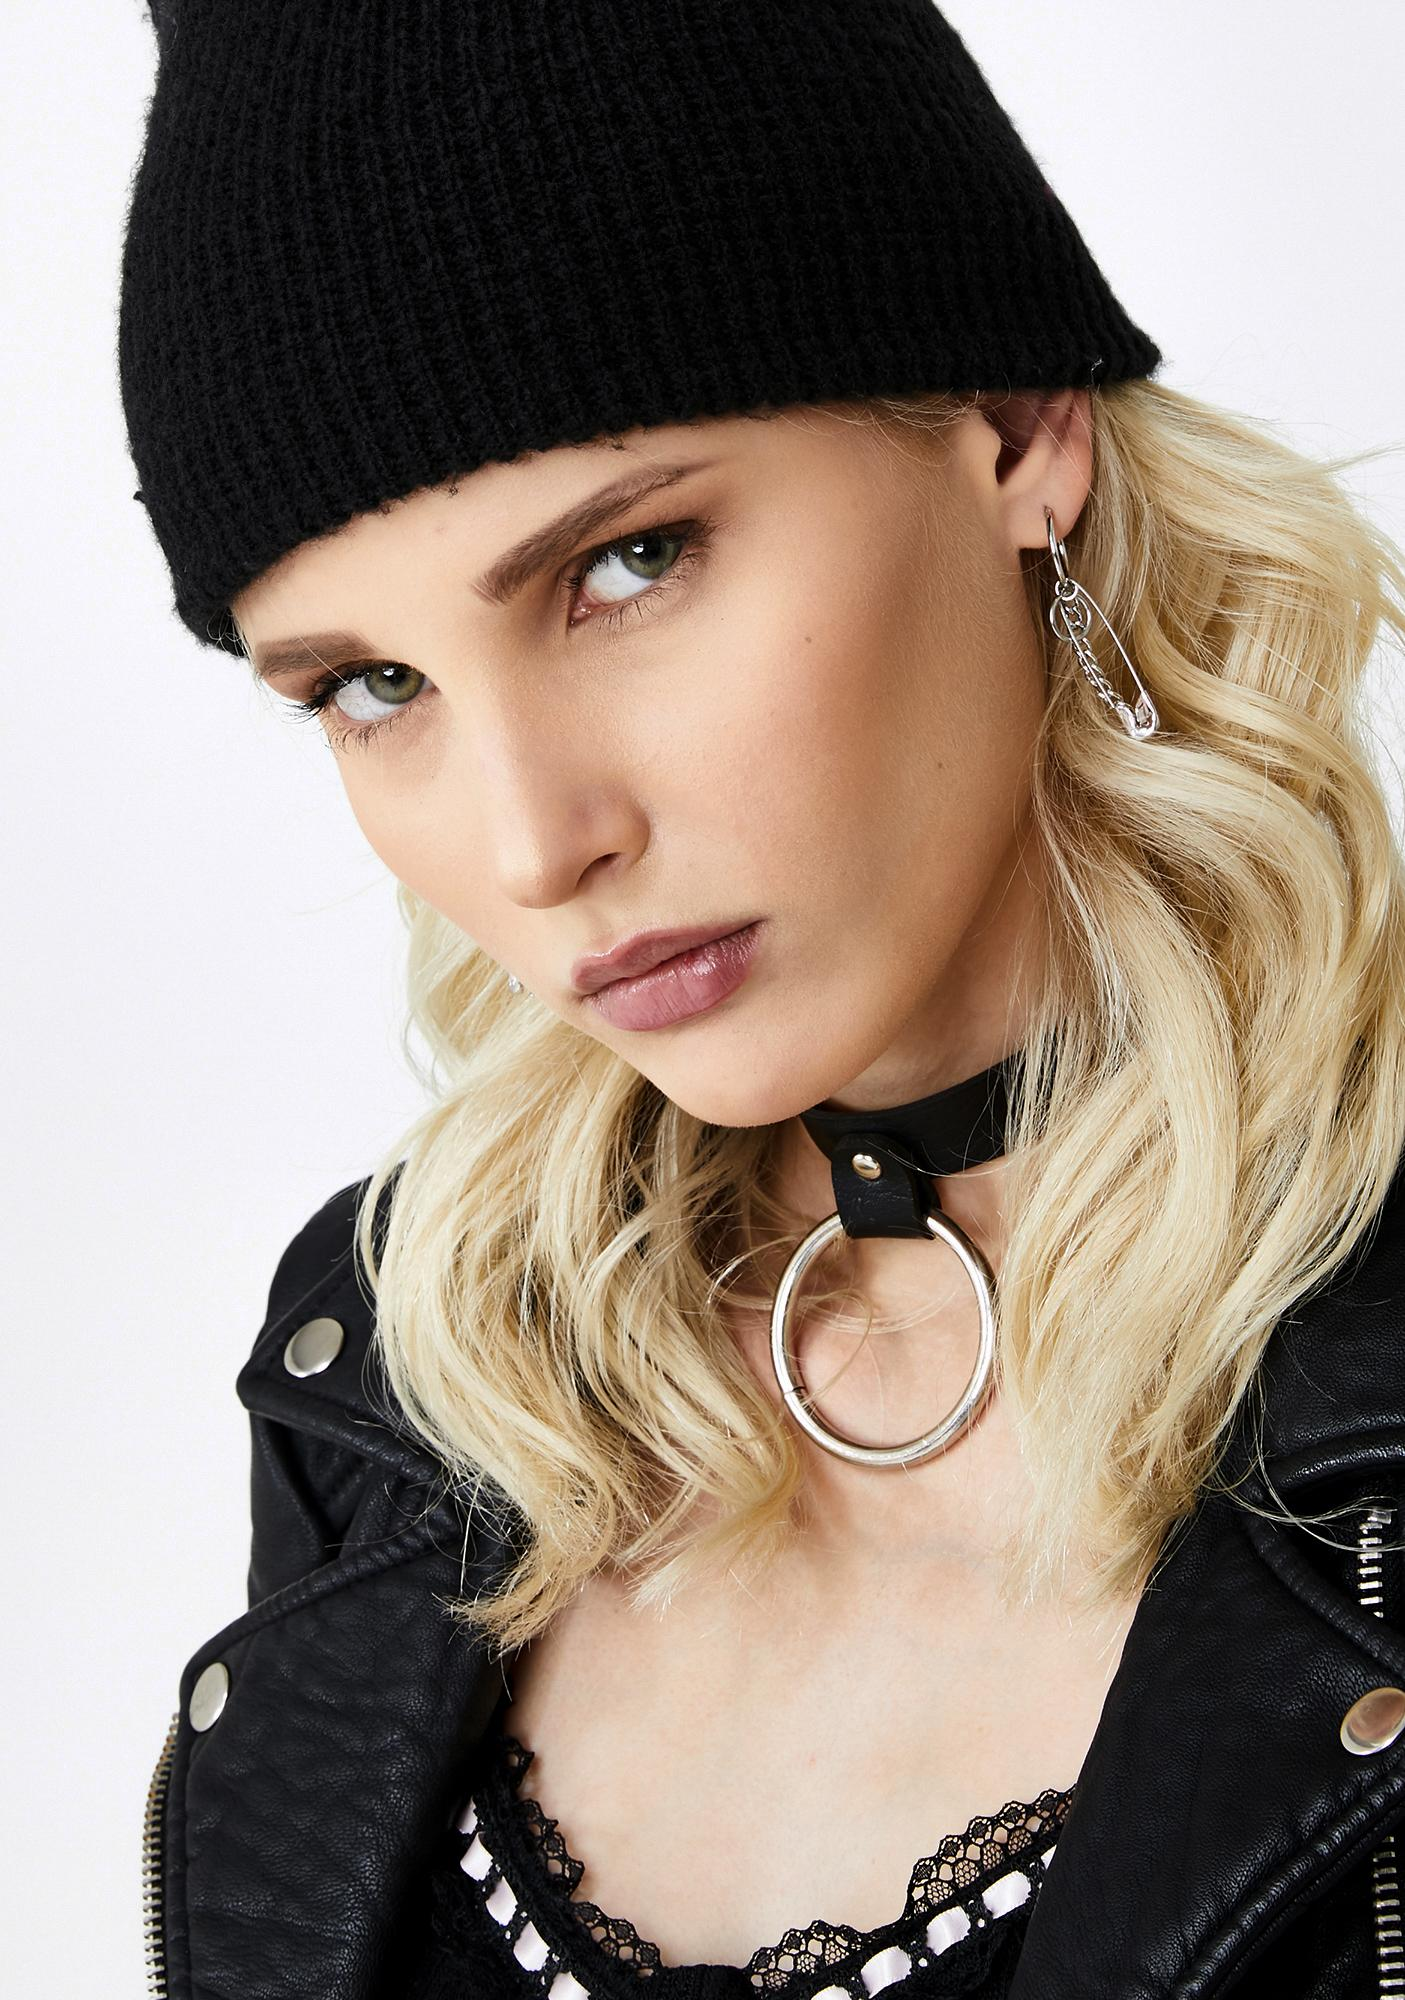 Tough Chick Safety Pin Earrings